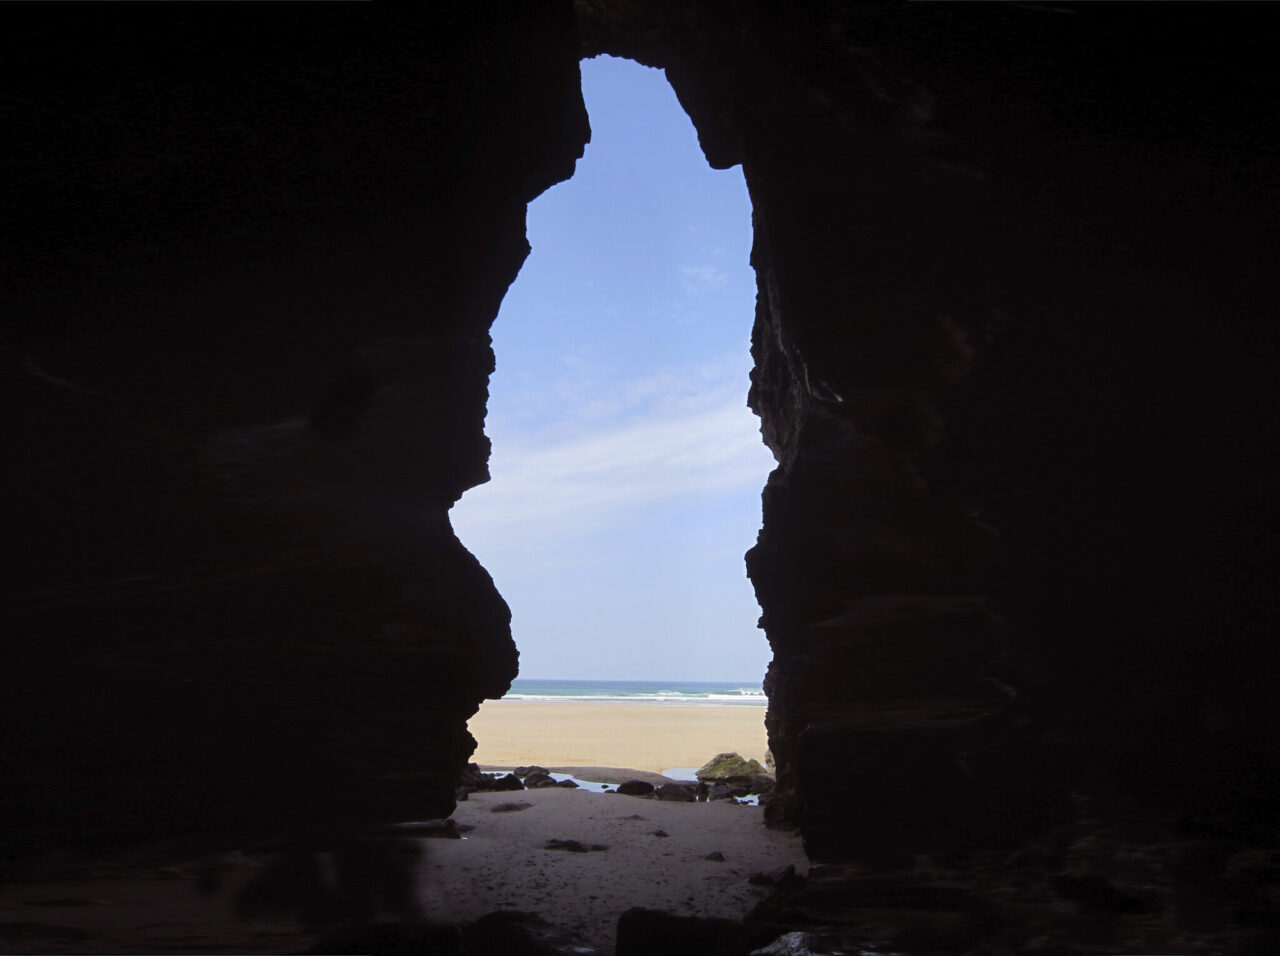 The mouth of a cave, showing the sky, sea and a beach beyond